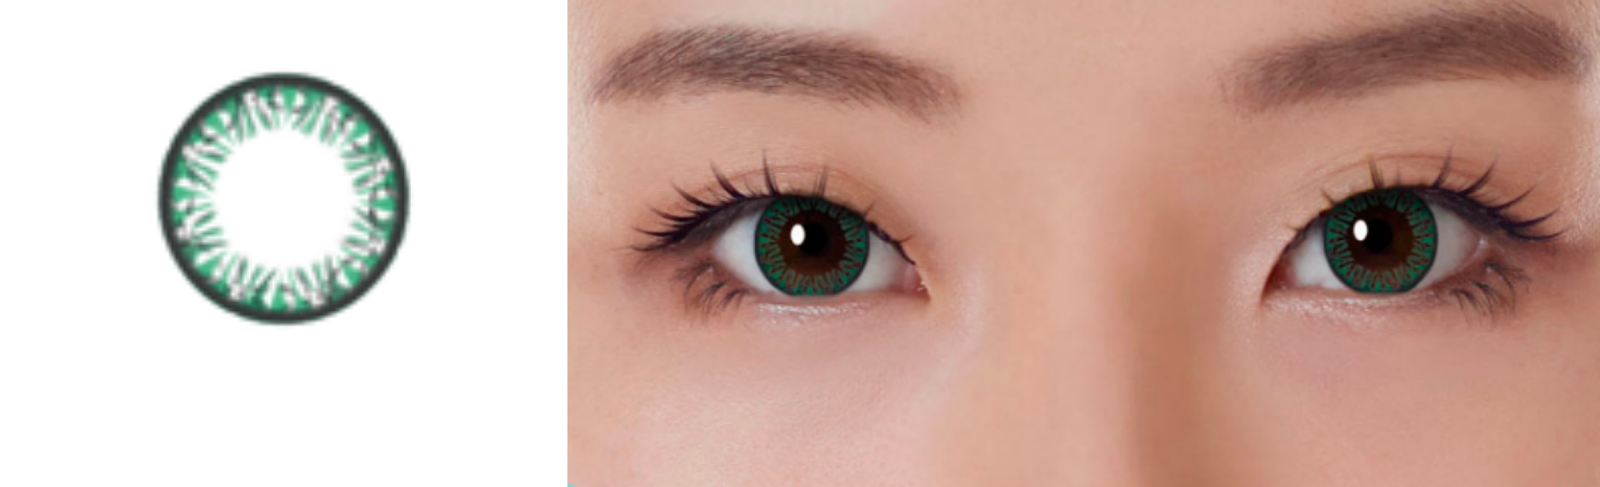 Bausch Lomb Lacelle Series Cosmetic Contact Lens Sinnee